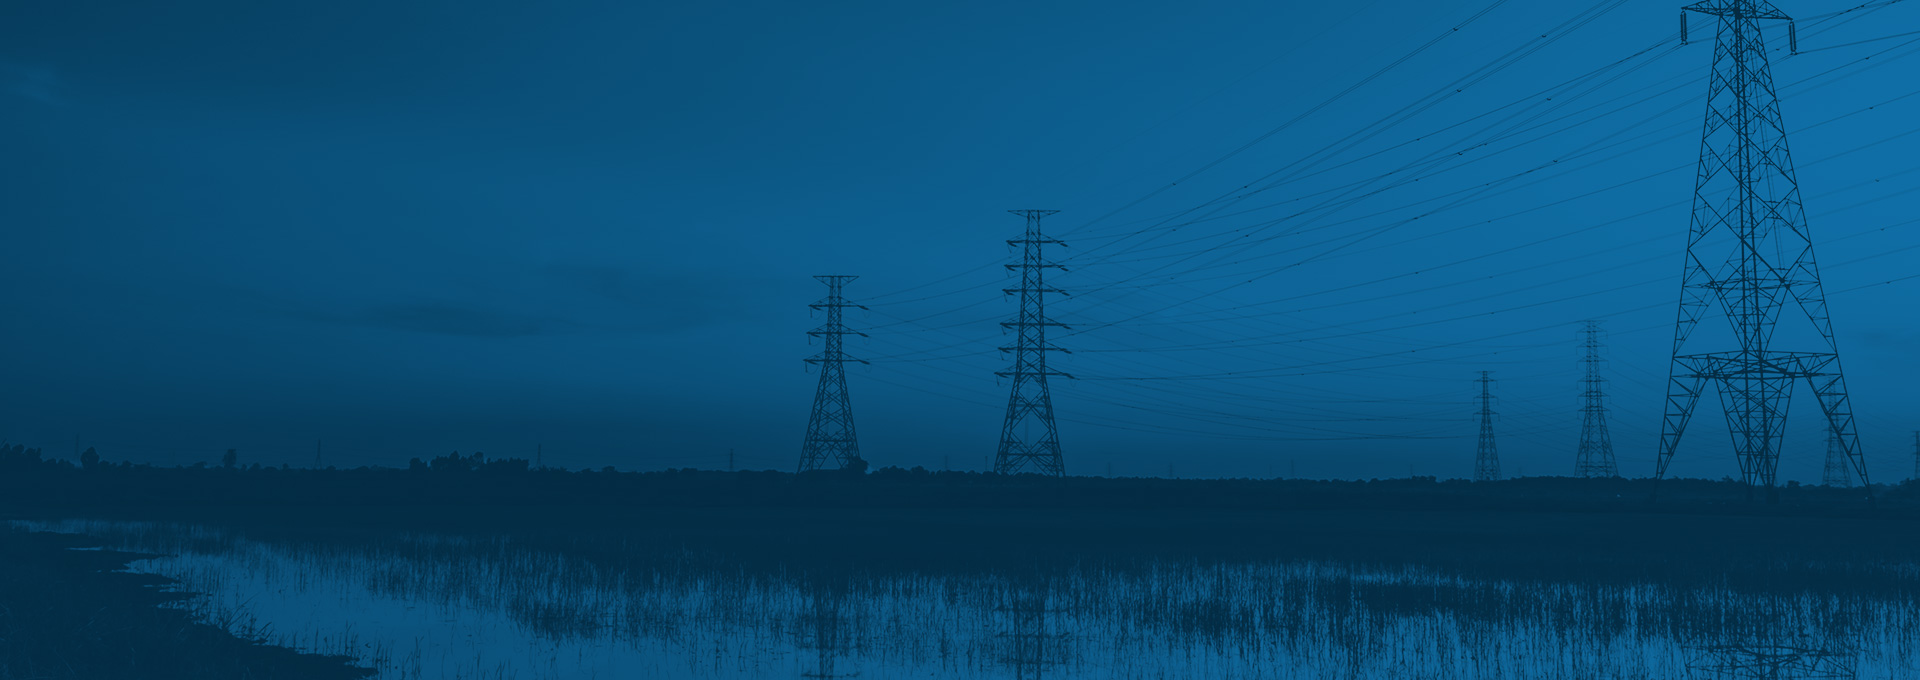 NM Group: Securing Energy Supply for a Greener Tomorrow